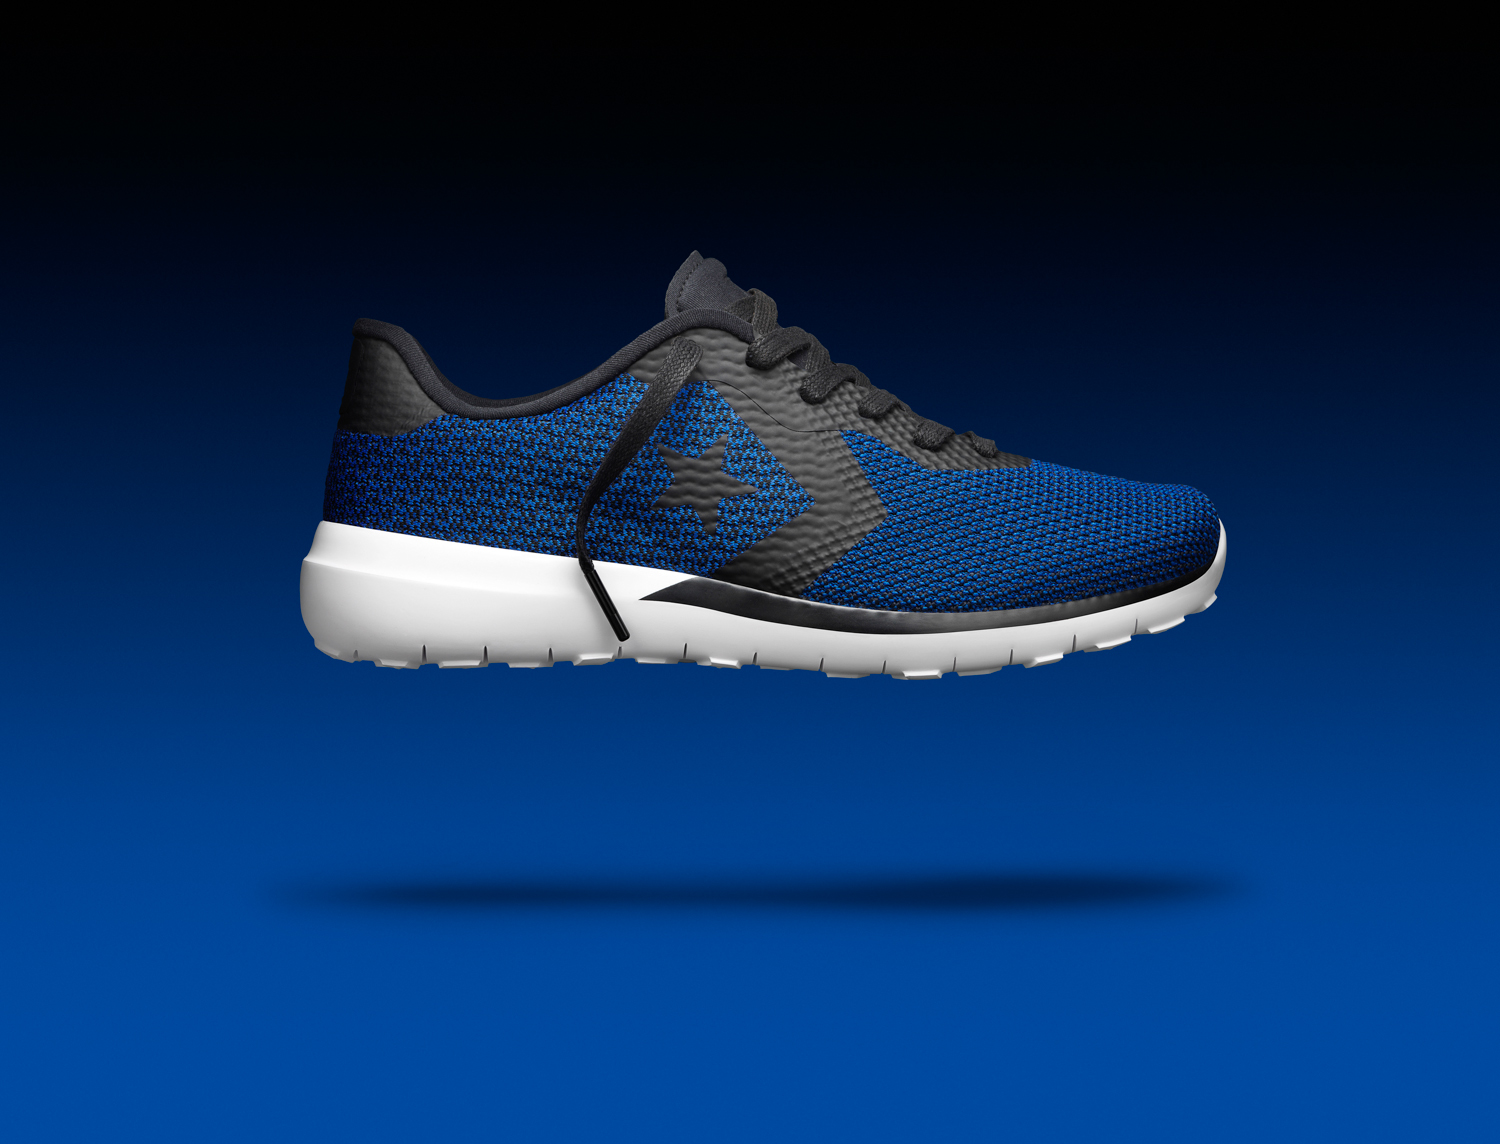 299356_Auckland_Modern_Blue_Lateral